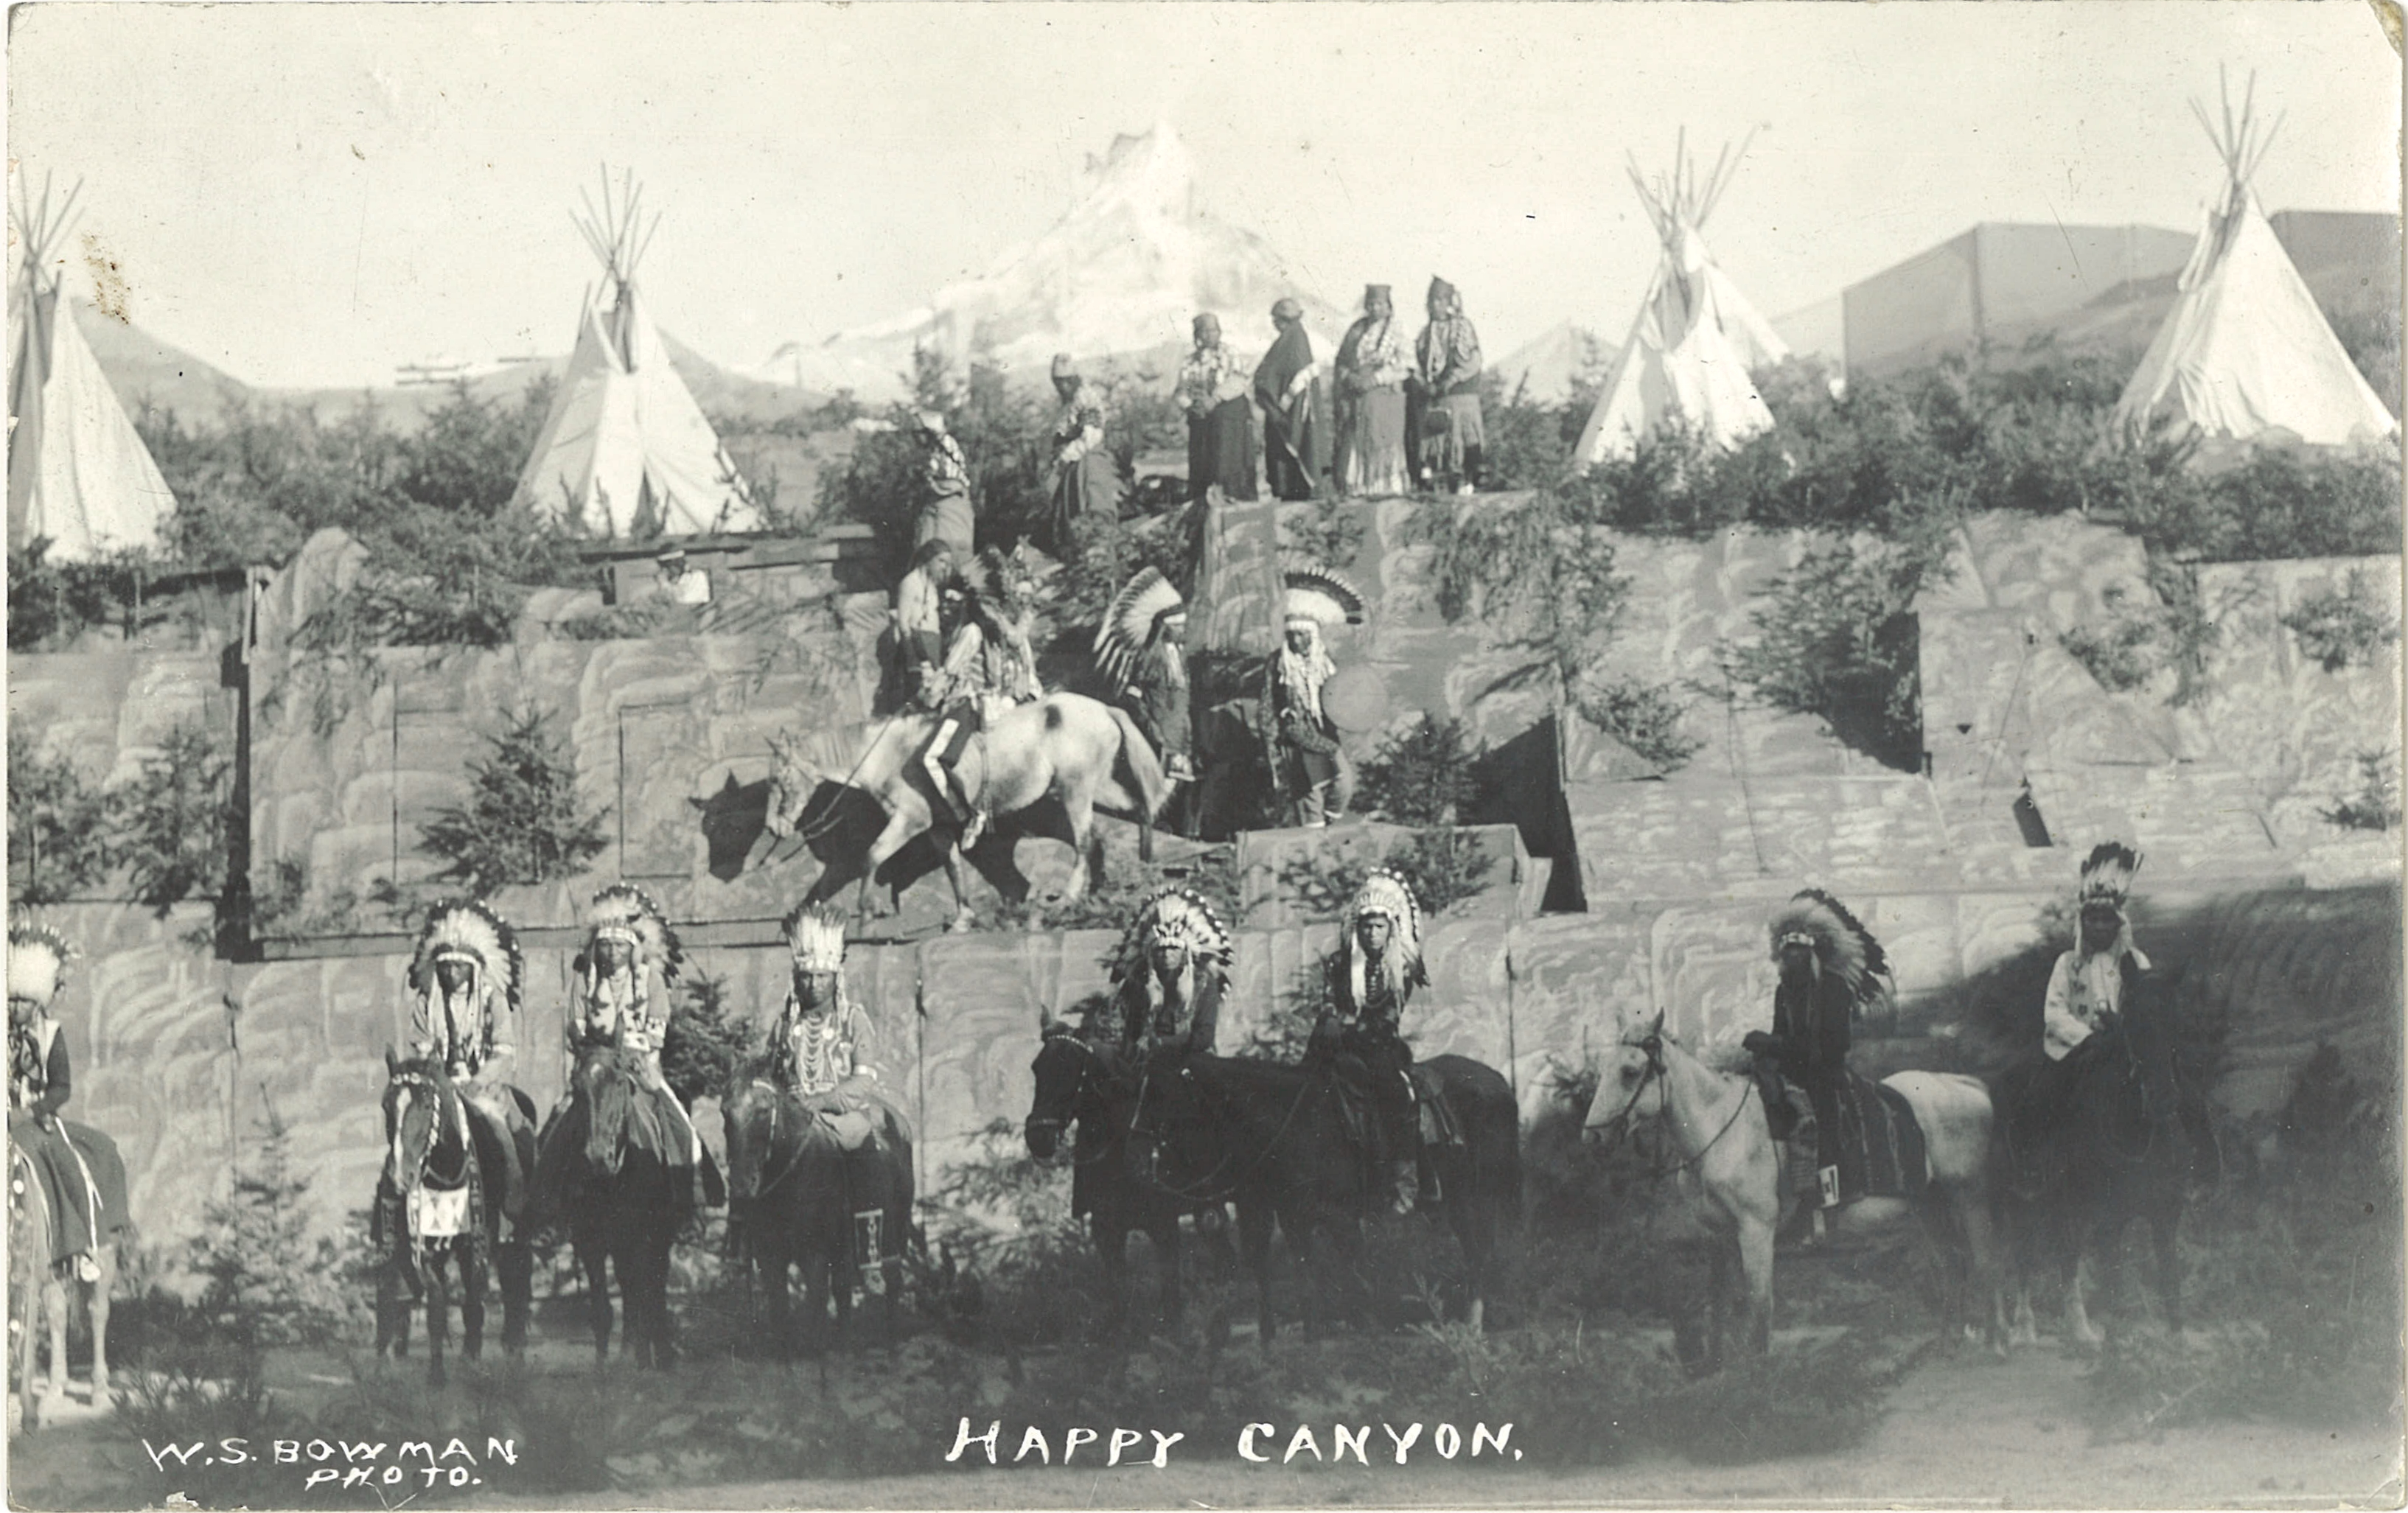 Happy Canyon - A History of the World's Most Unique Indian Pageant and Wild West Show